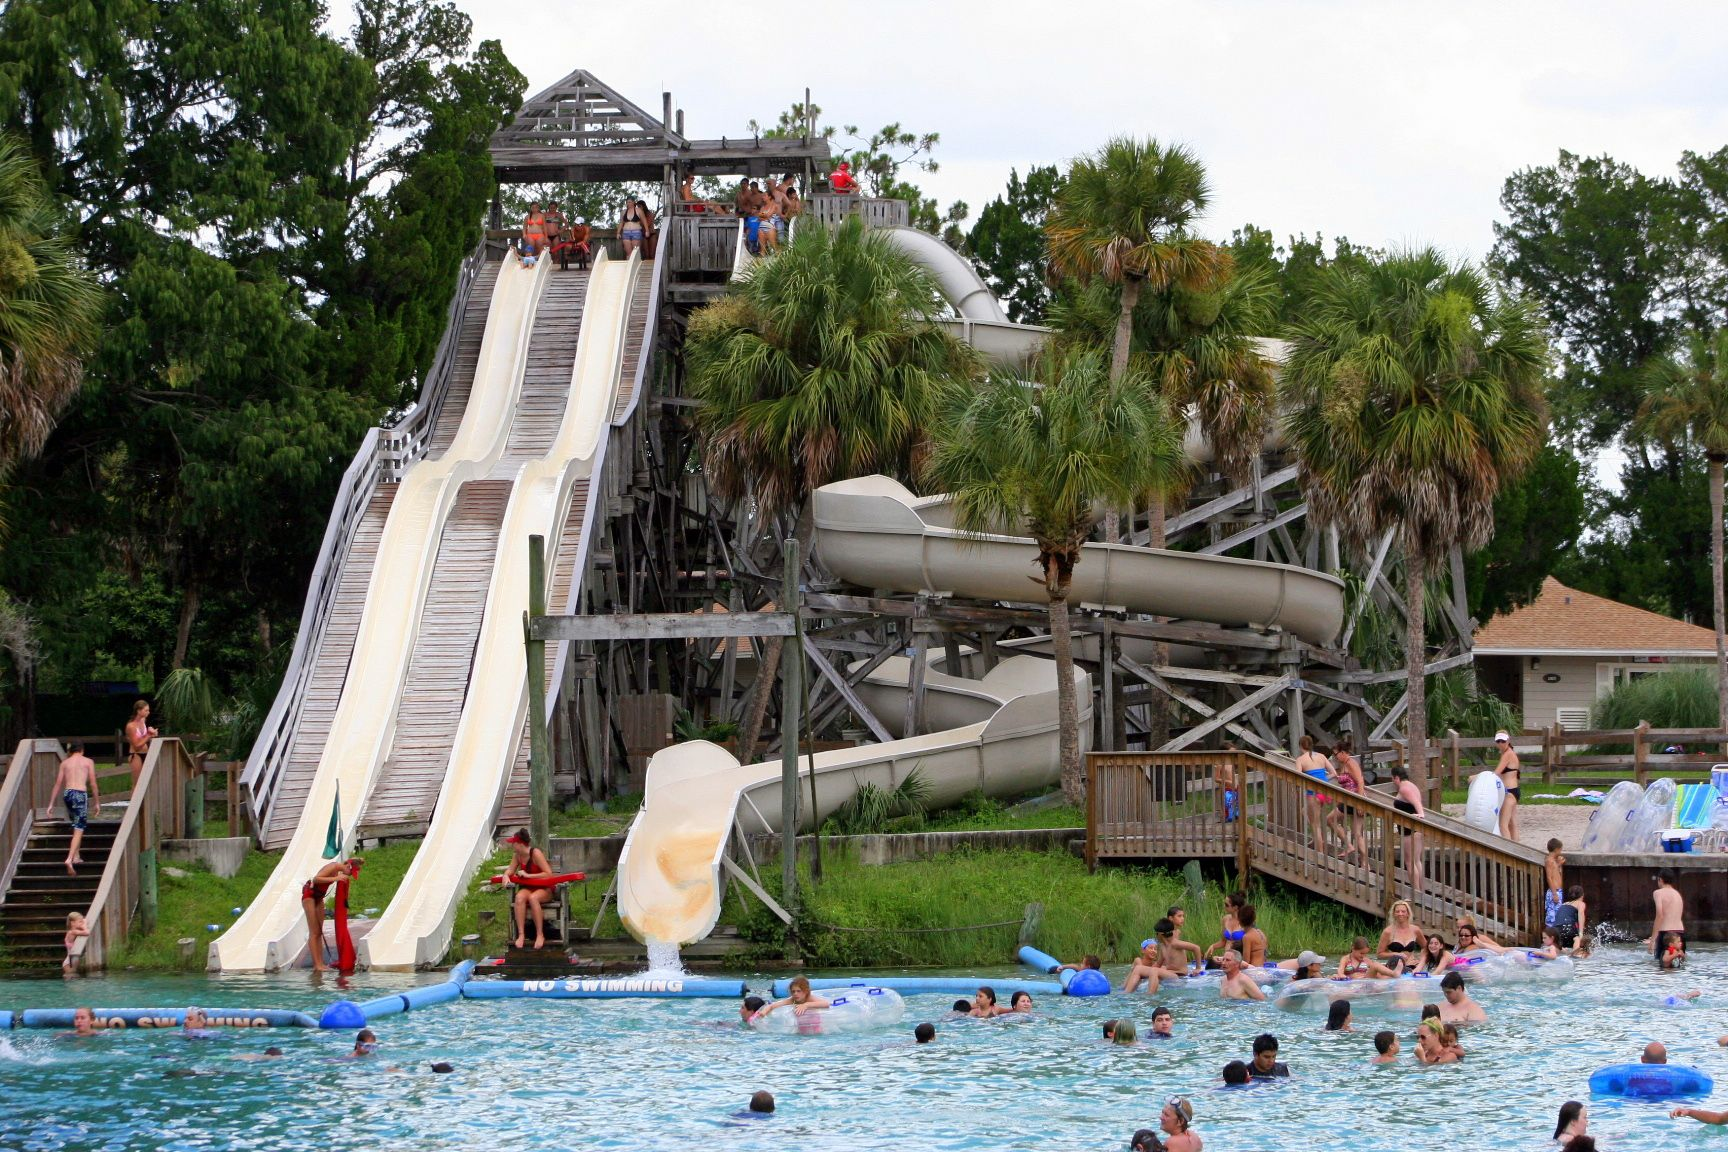 The water slides are open daily at Weeki Wachee Springs